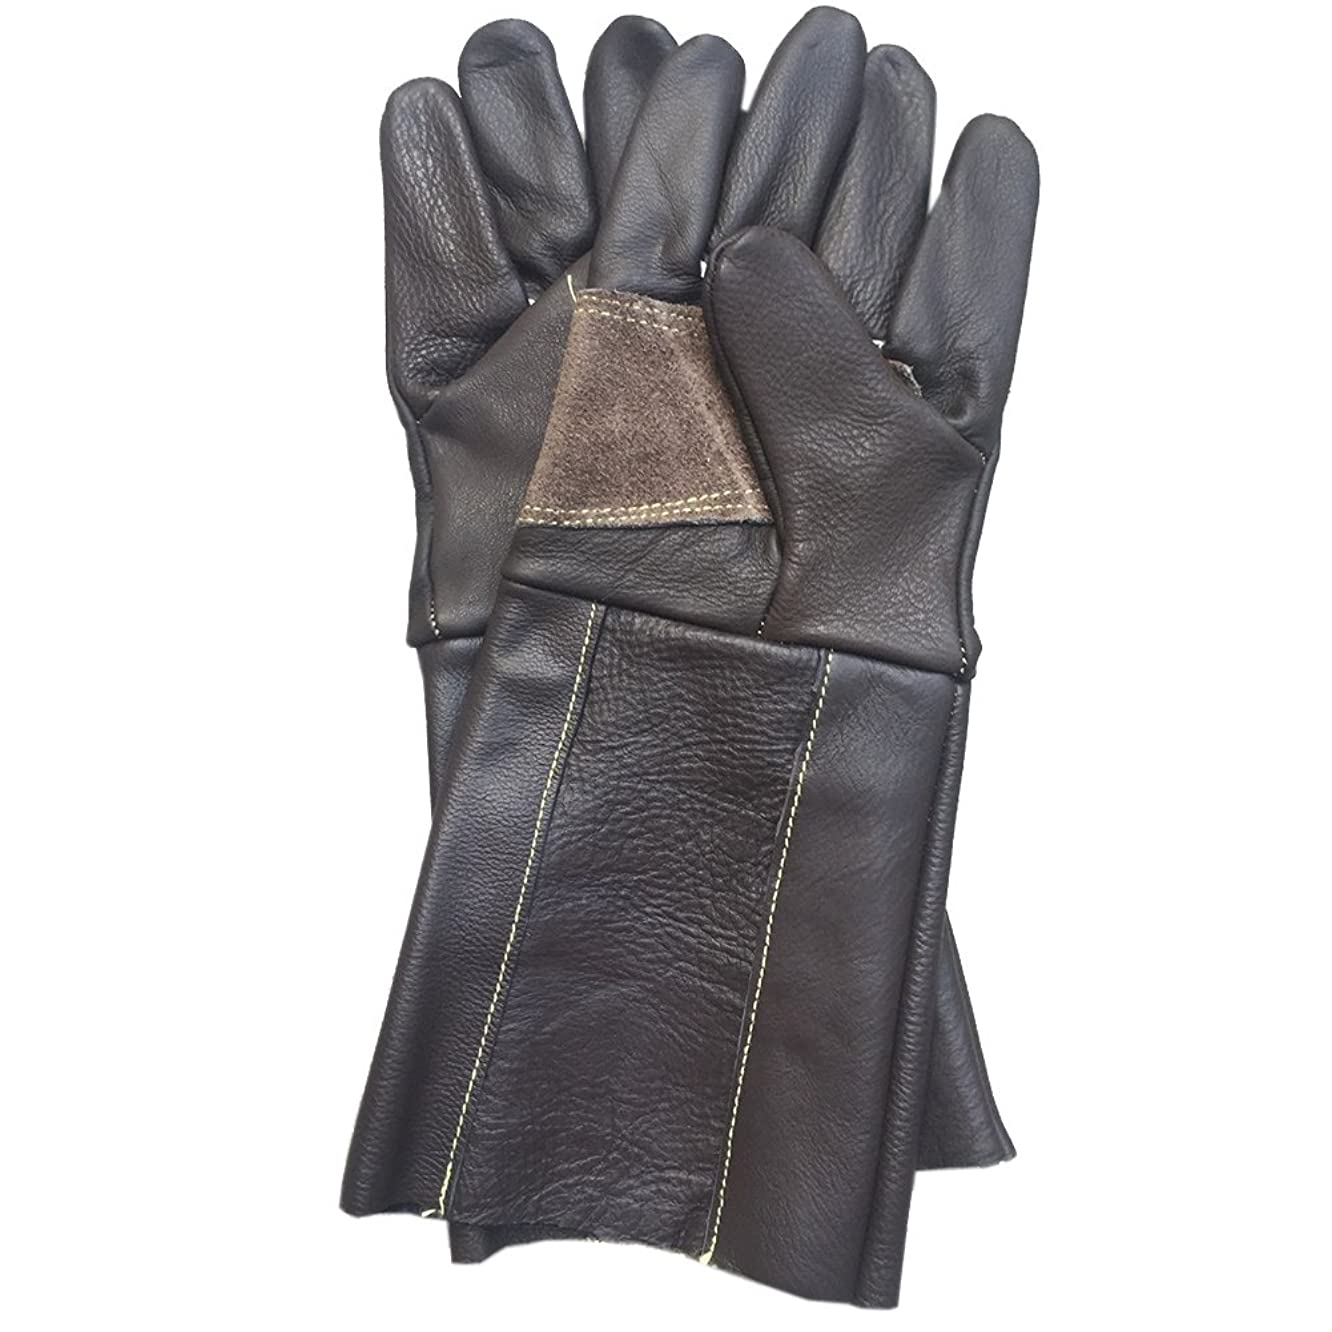 Thorn Proof Gloves for Men and Women Cowhide Leather Gardening Gloves with Long Gauntlet to Protect Your Arms Until the Elbow Coffee YLST05